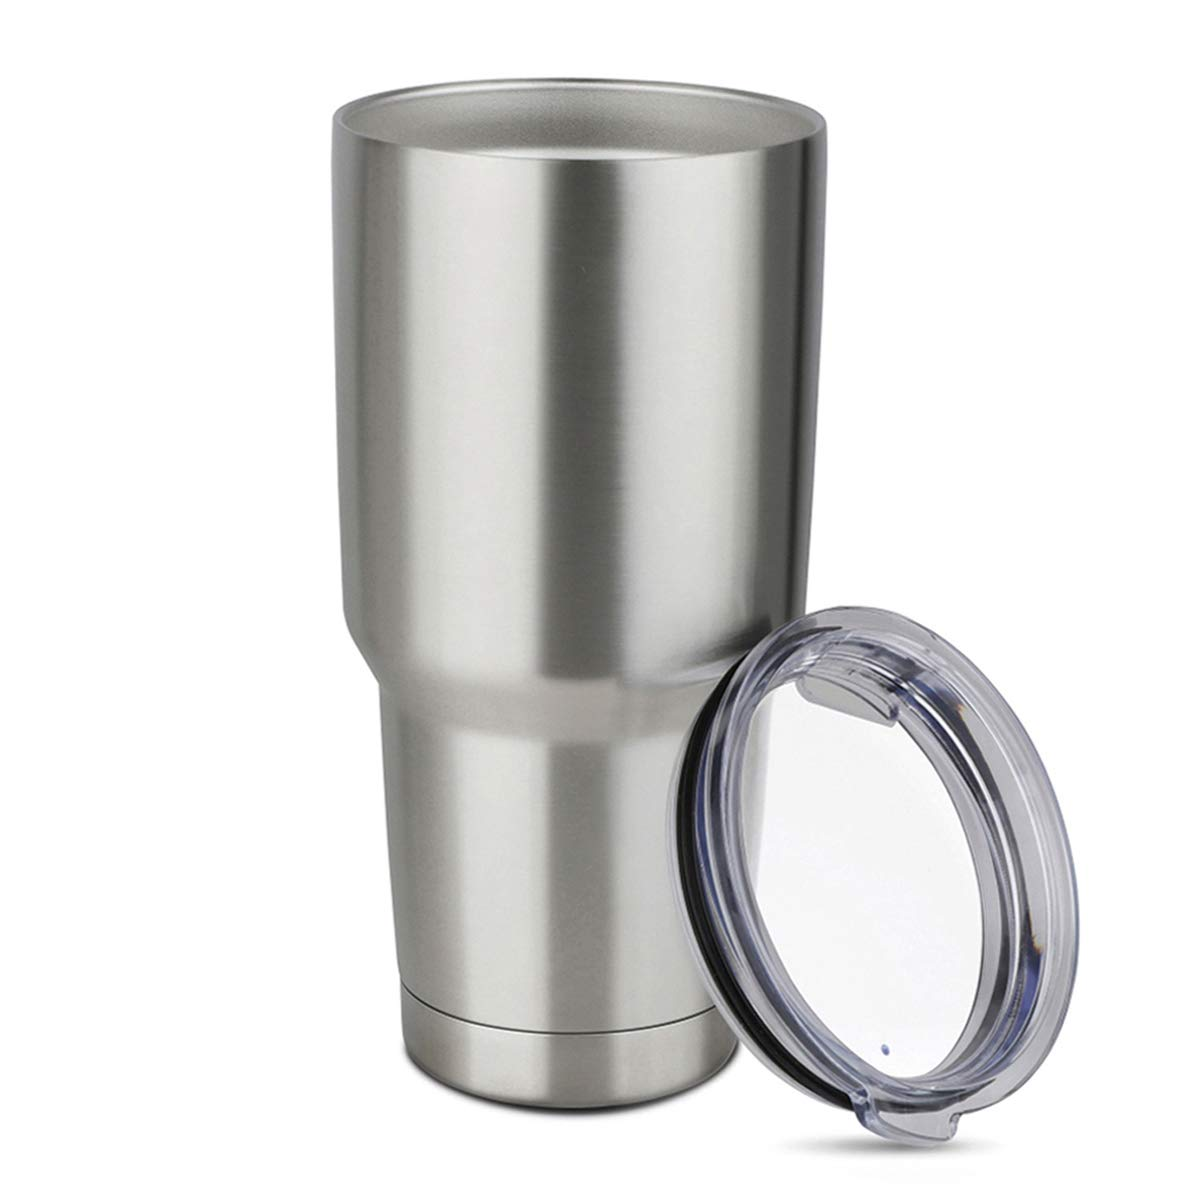 COMOOO 30oz Double Wall Vacuum Insulated Travel Mug - Stainless Steel Tumbler with Lid Coffee Cup for Cold & Hot Drinks (Silver,1 Pack)